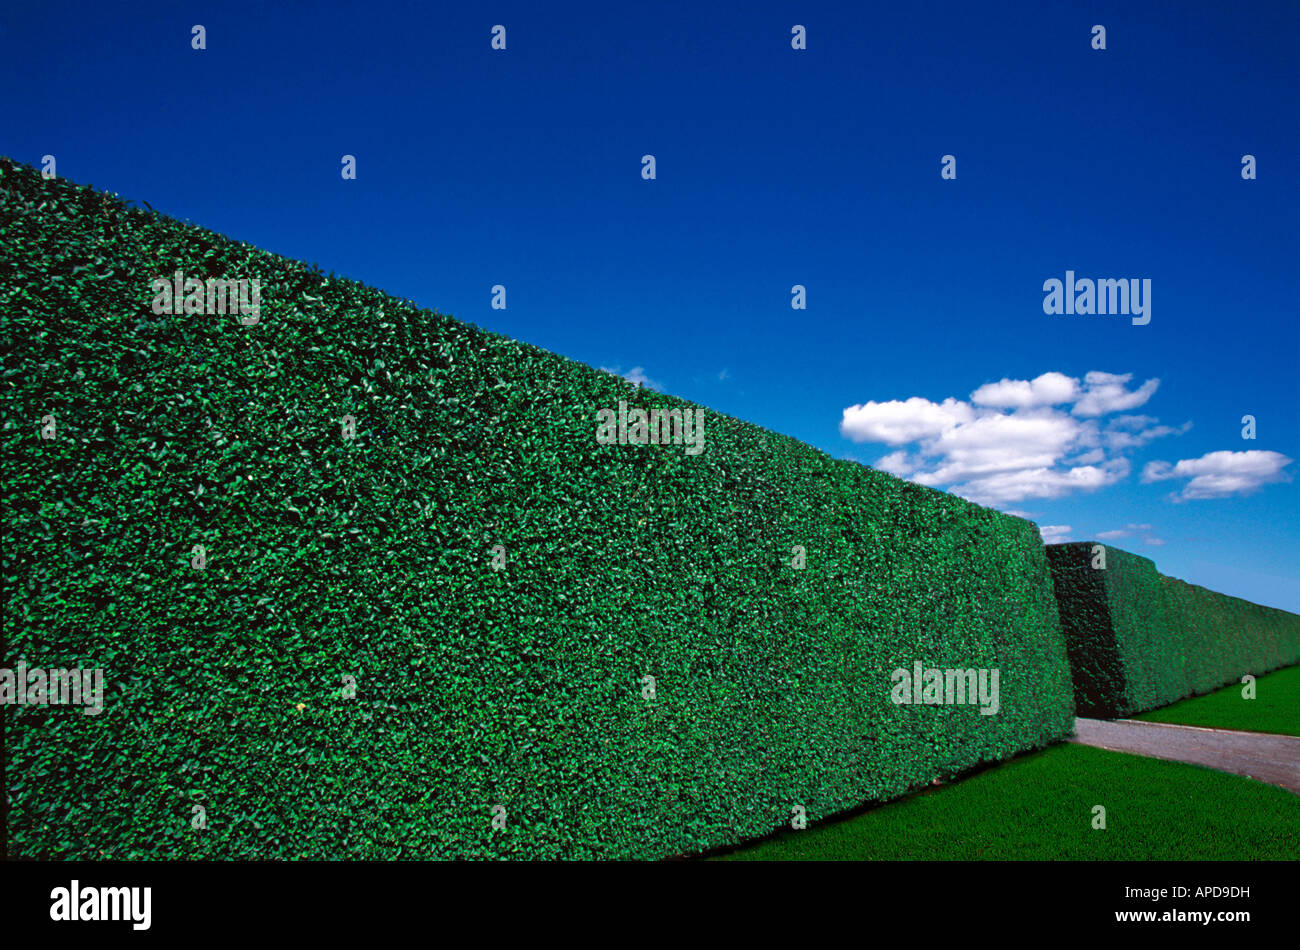 Tall perfectly trimmed hedge - Stock Image